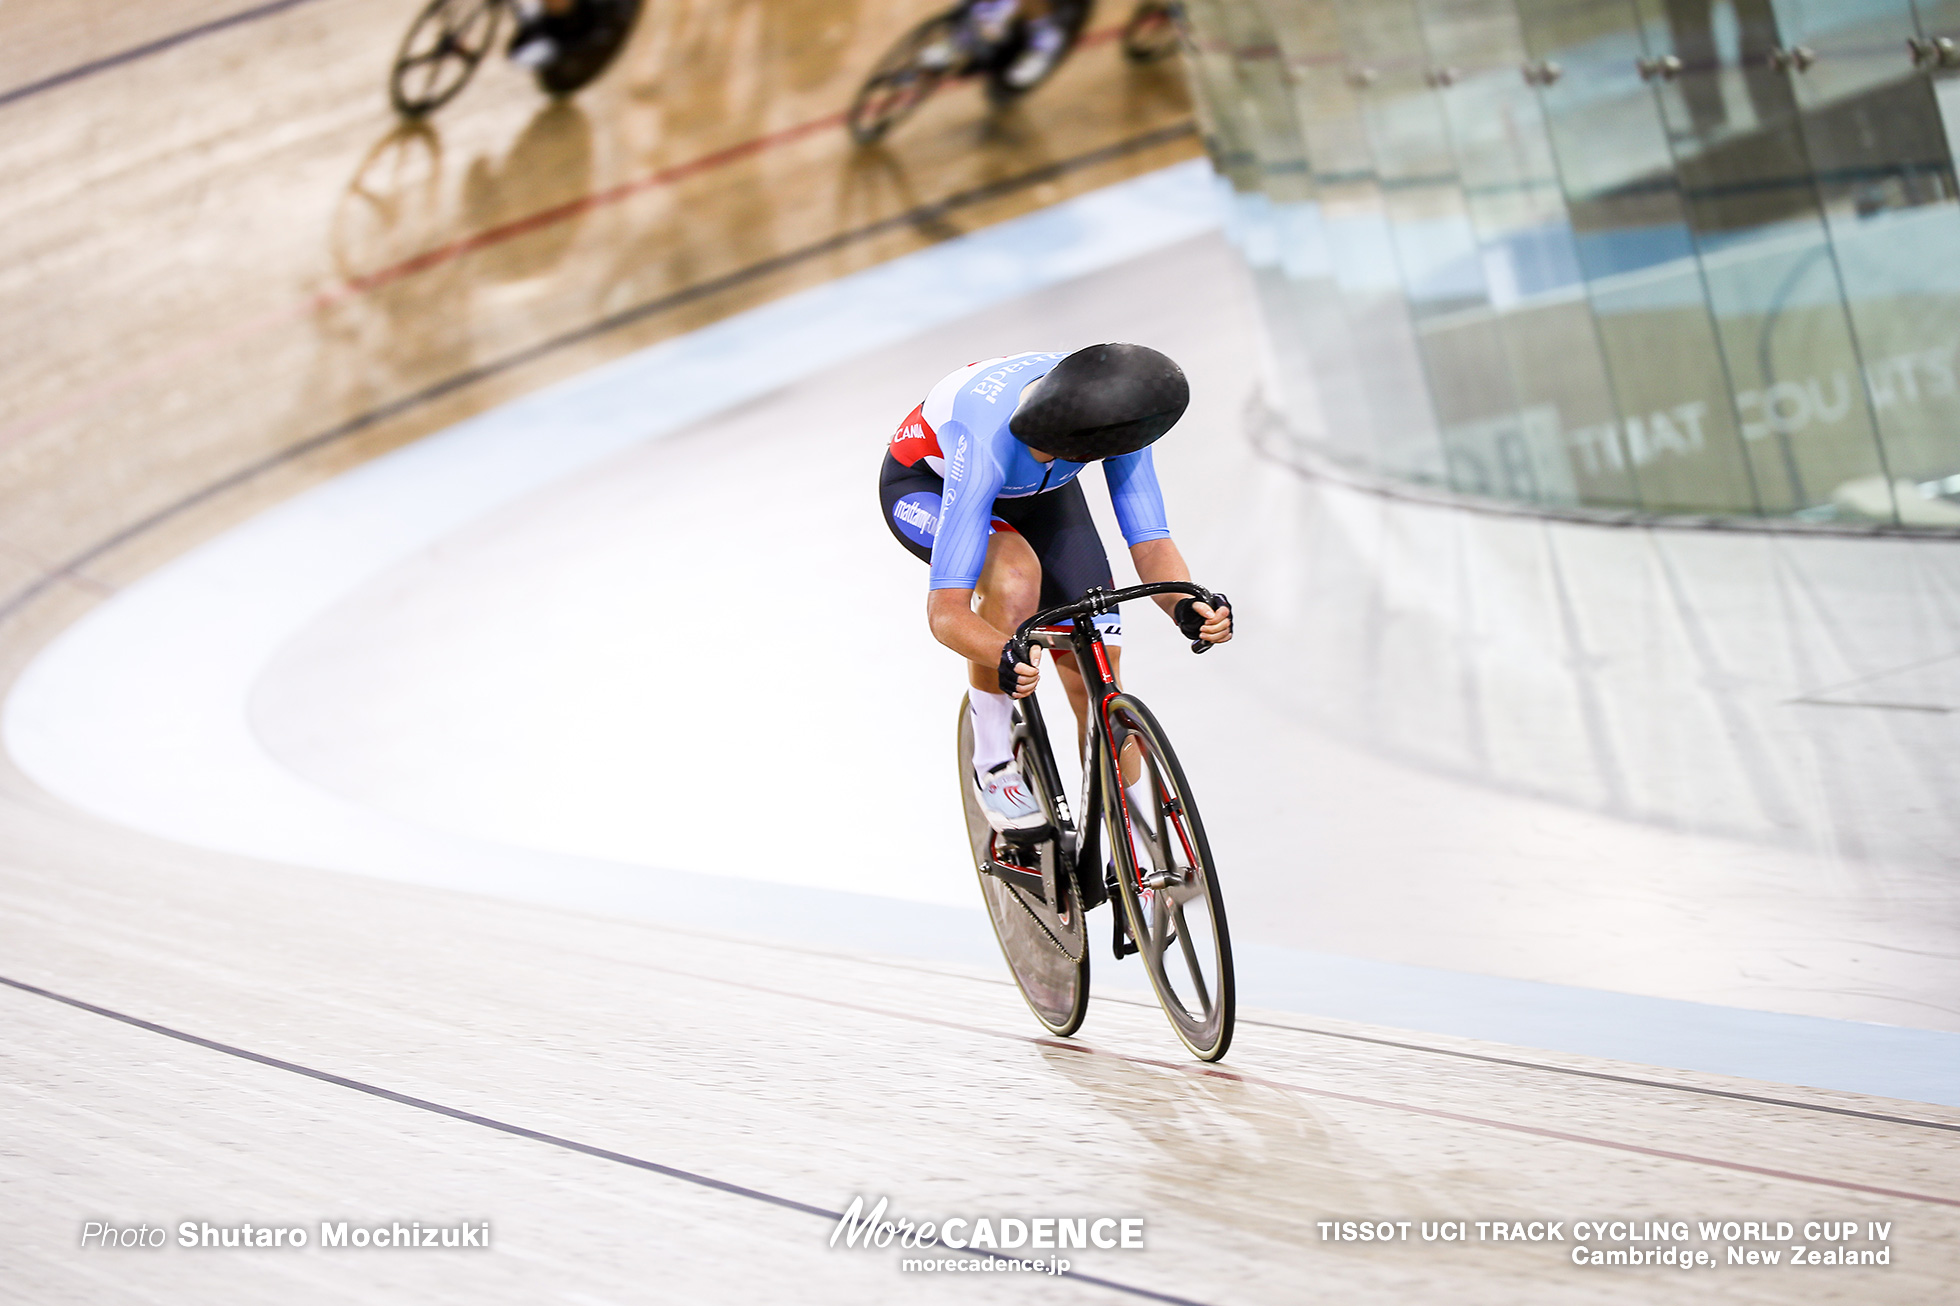 Tempo Race / Women's Omnium / TISSOT UCI TRACK CYCLING WORLD CUP IV, Cambridge, New Zealand, Allison BEVERIDGE アリソン・ベバレッジ